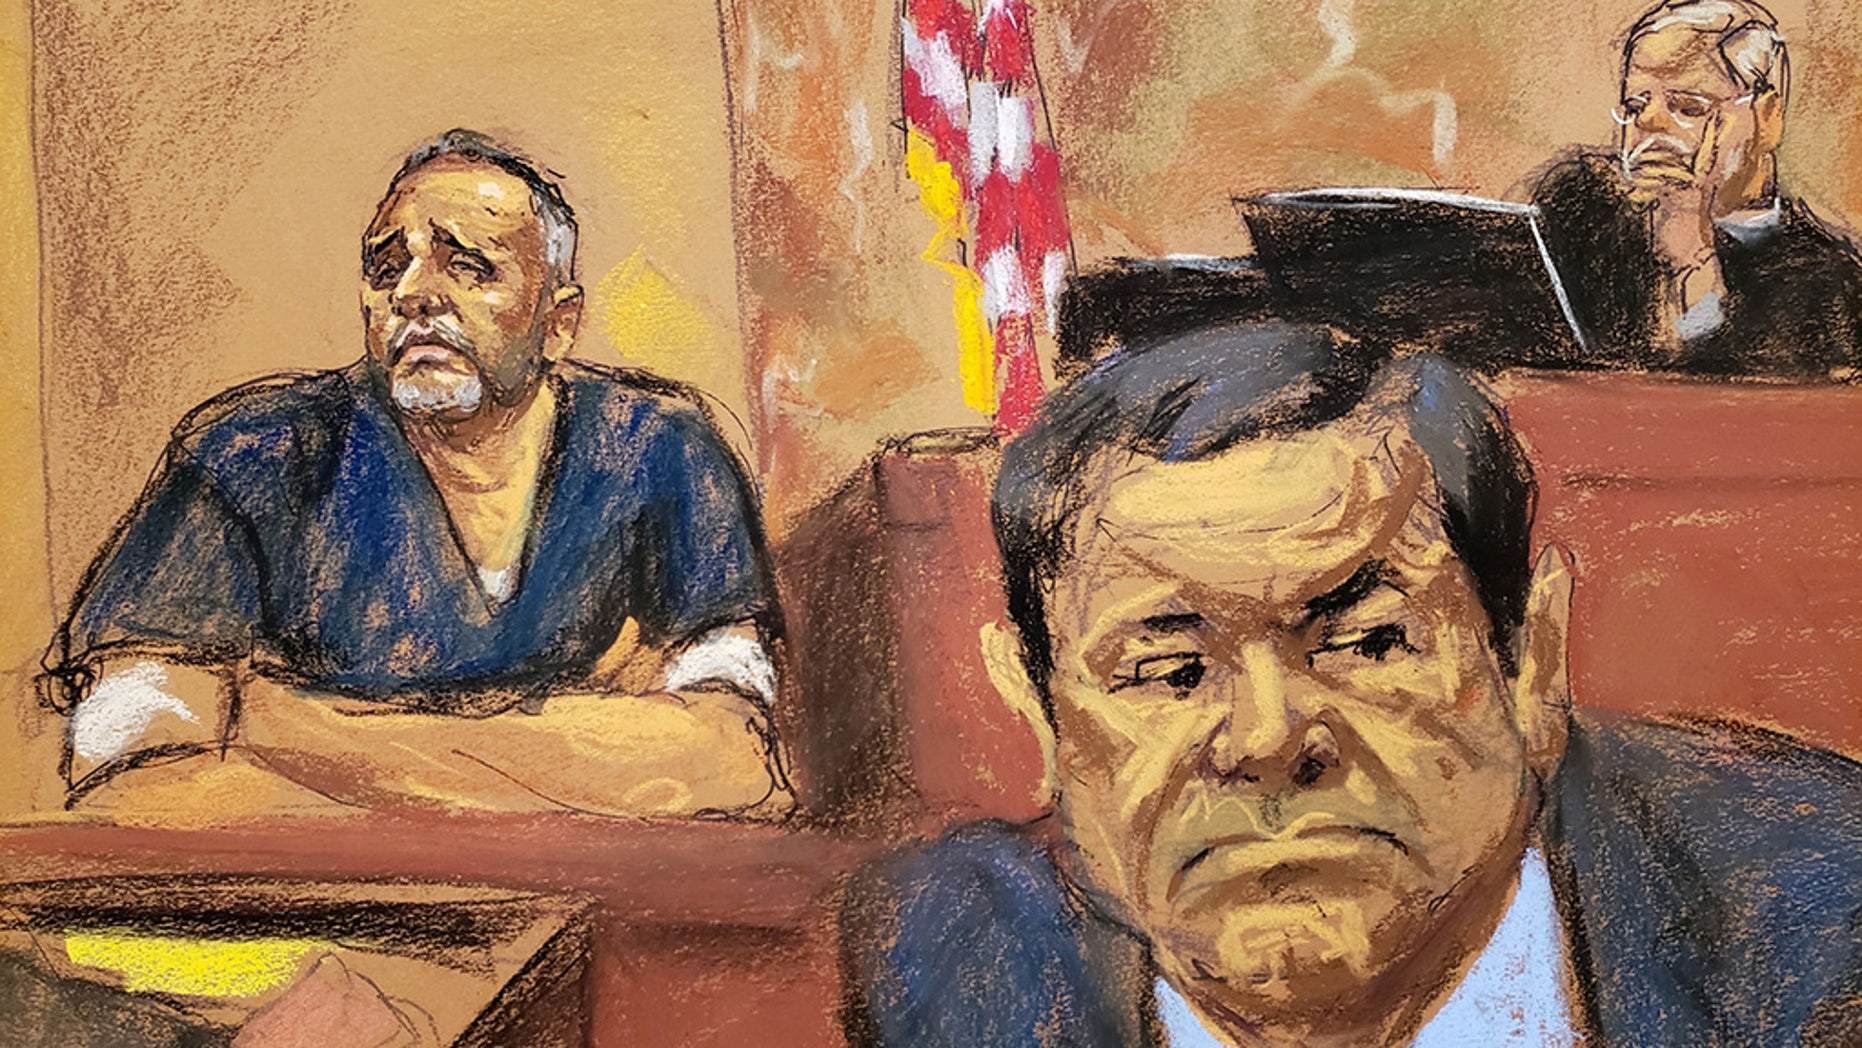 El Chapo trial: Witness says ex-Mexican president given $100M bribe